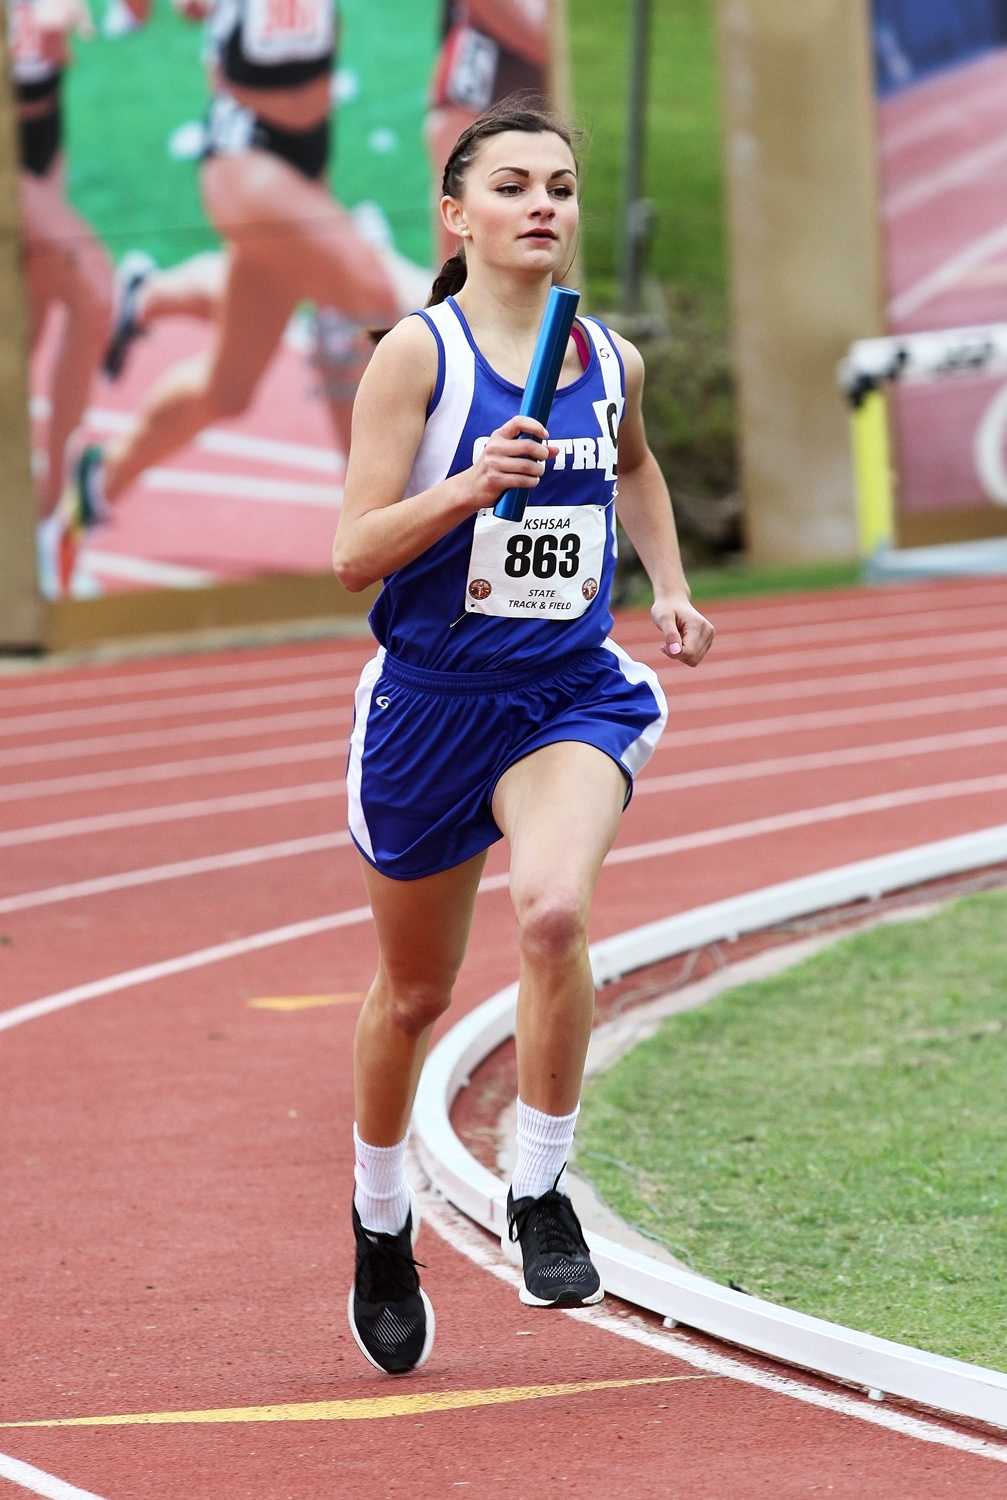 Centre?s Shelby Makovec anchors the 4x800-meter relay. She and teammates Lotti Benning, Nellie Kassebaum and Callie Riffel placed 12th in 11:16.90. They set the school record at regionals with a time of 10:46.84. Phyllis Richert Photo